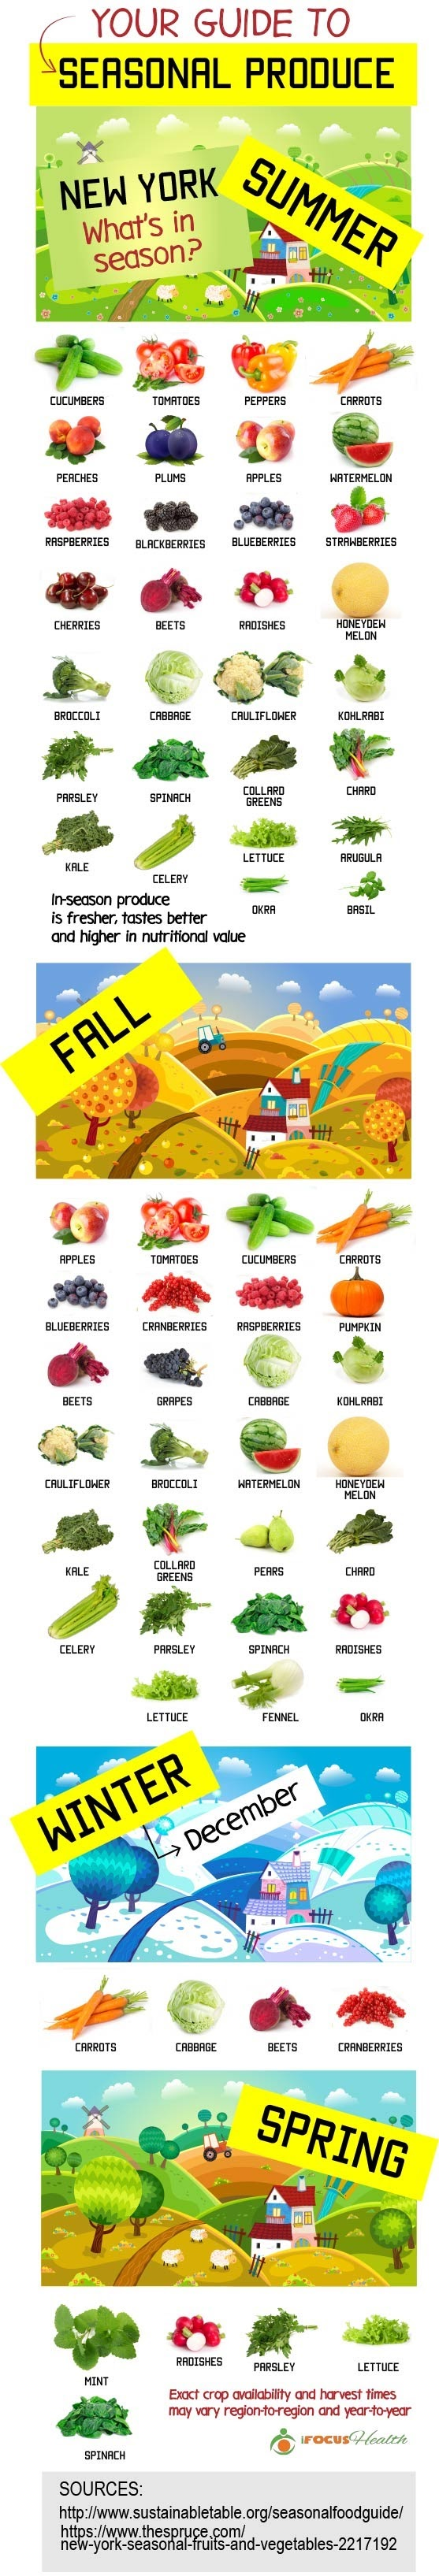 Yours Guide to Seasonal Products #infographic